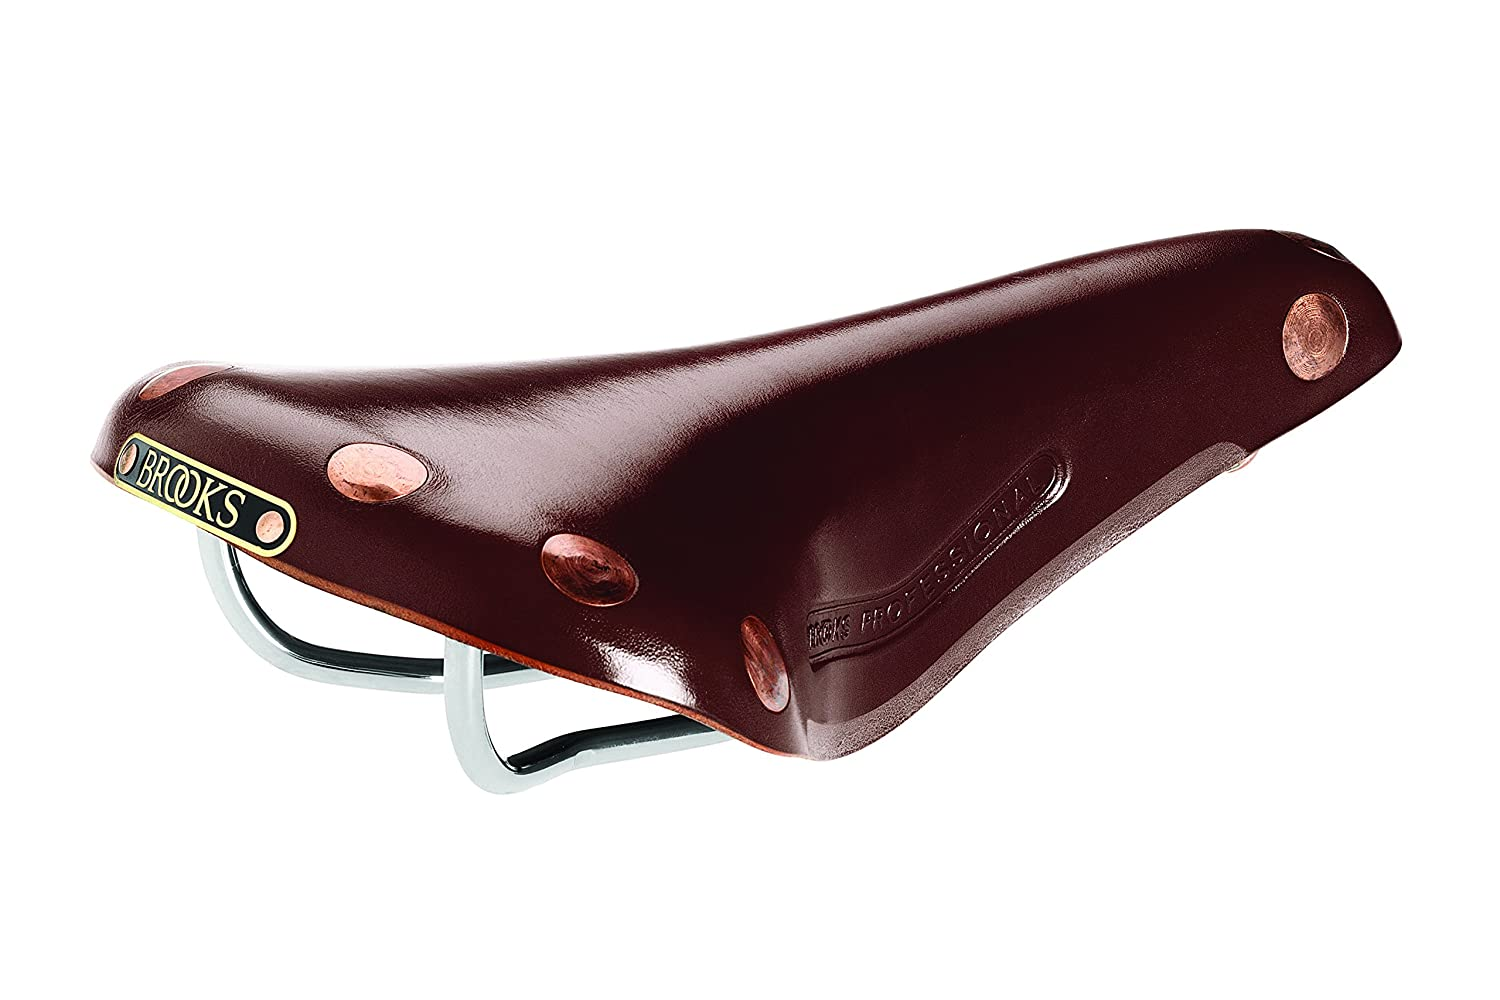 Associated product image for Brooks Saddles Men's Team Pro Bike Saddle